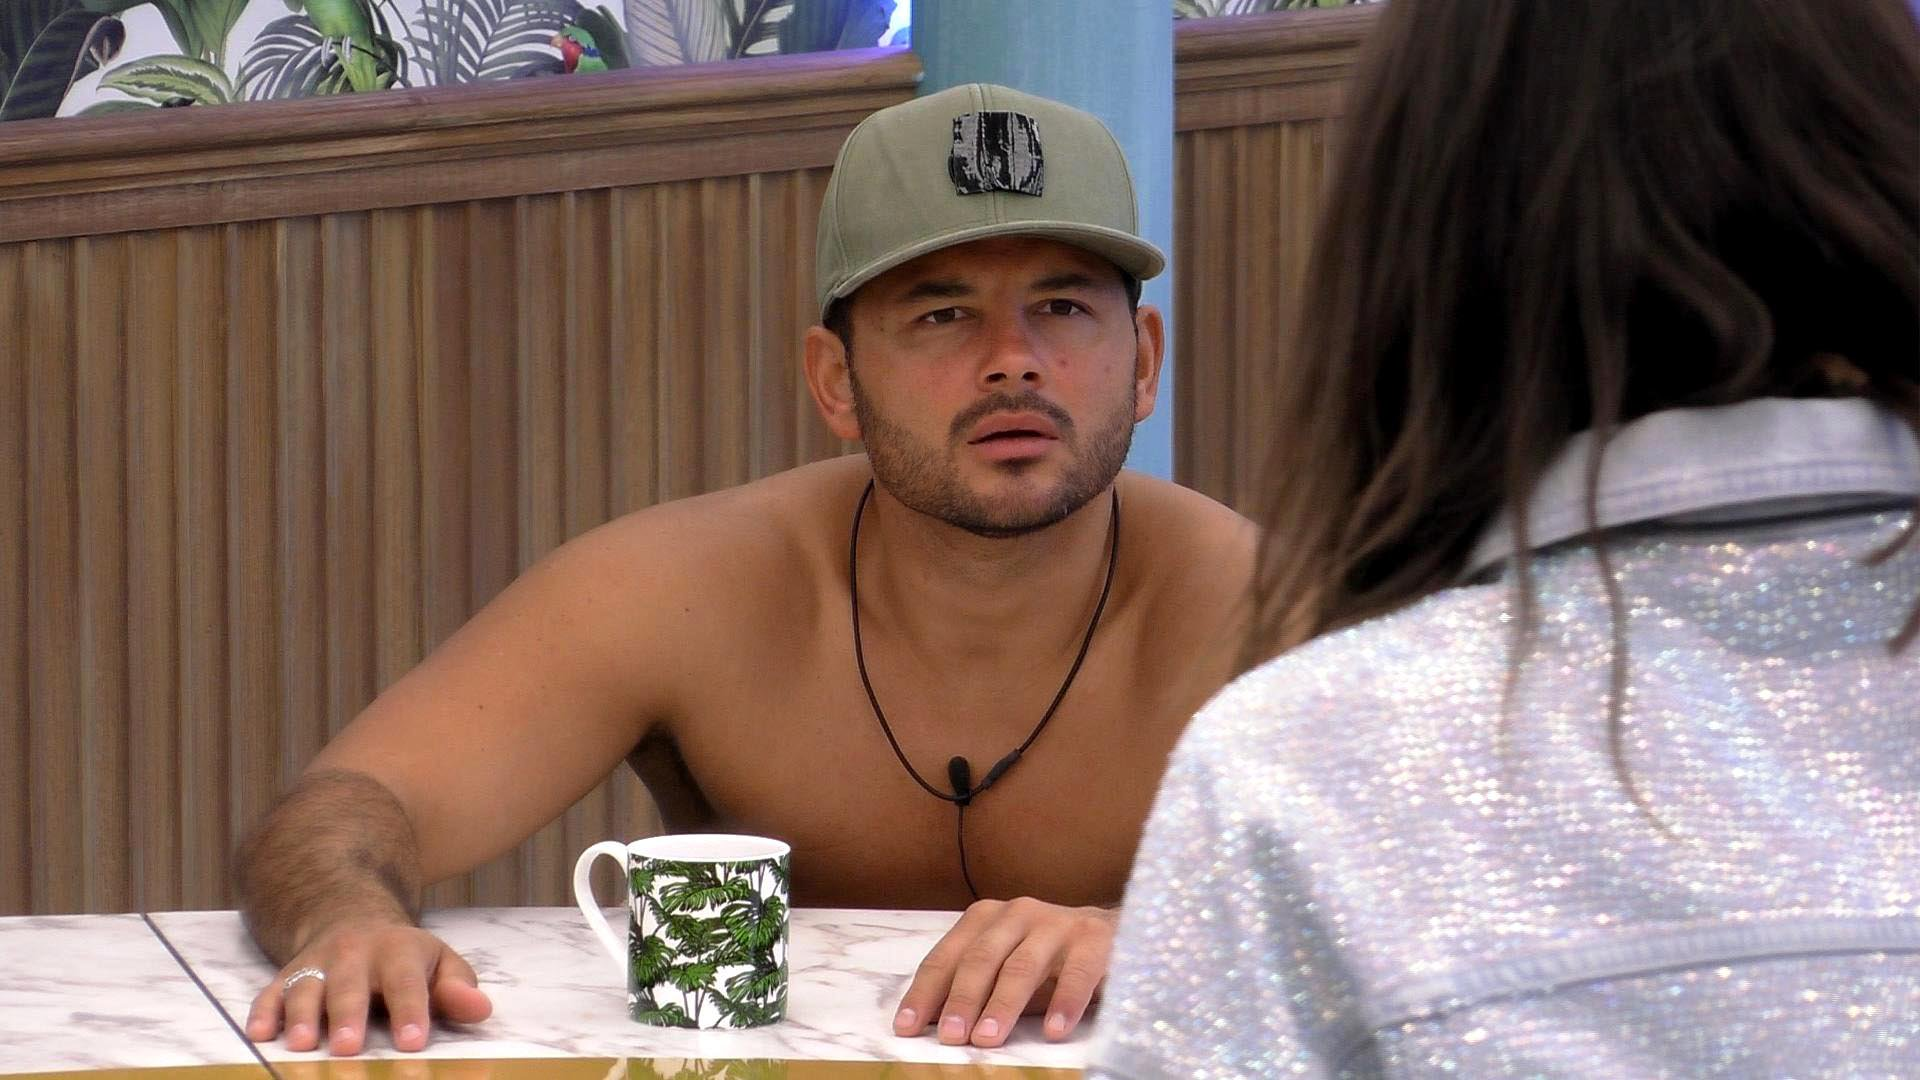 Ryan Thomas' team throw support behind him after Roxanne Pallett incident on Celebrity Big Brother